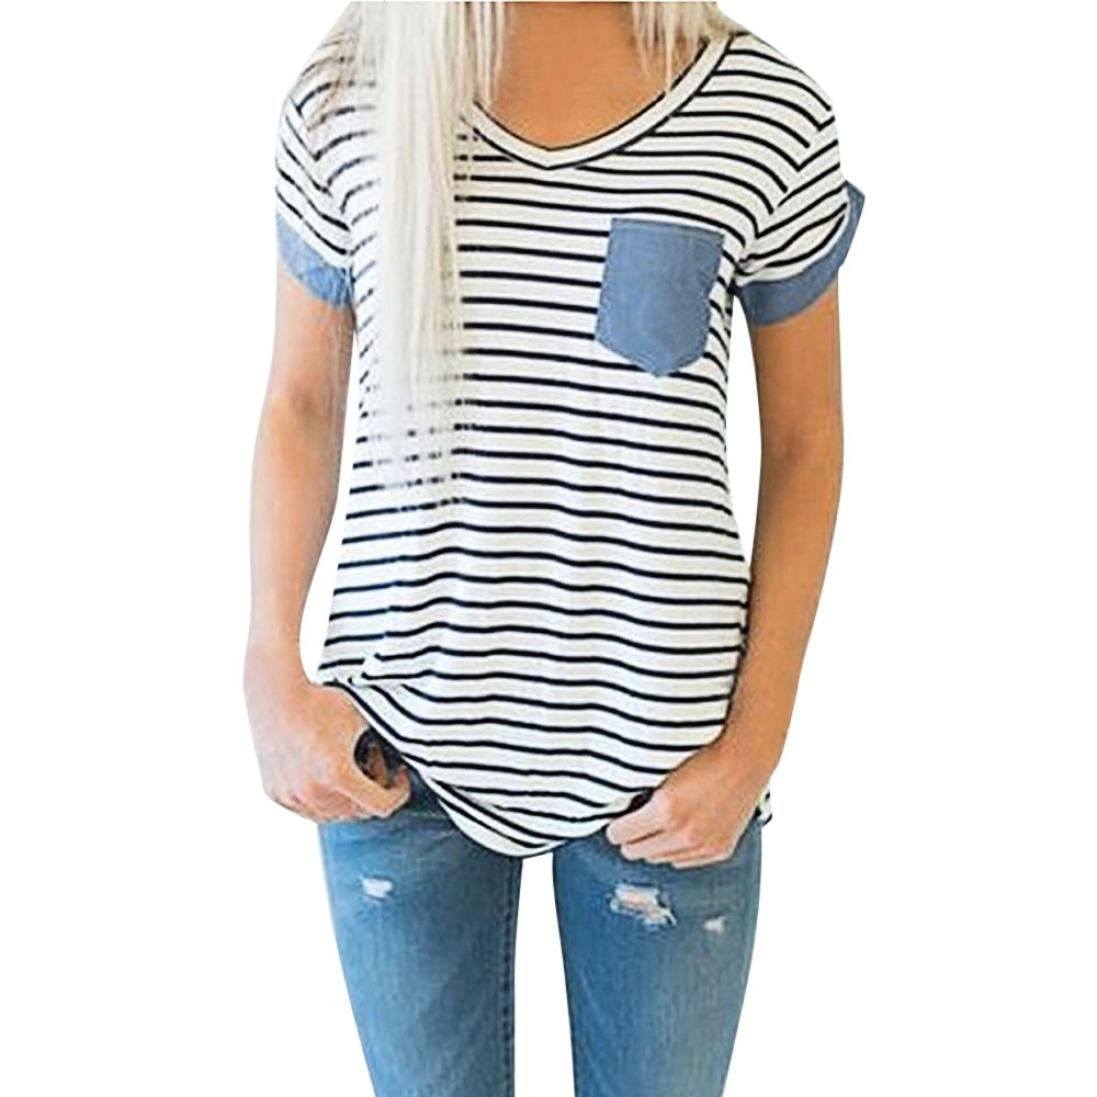 YANG-YI Clearance, Hot Fashion Women Short Sleeve Striped Patchwork Blouse Tops Ladies V Neck T-Shirt